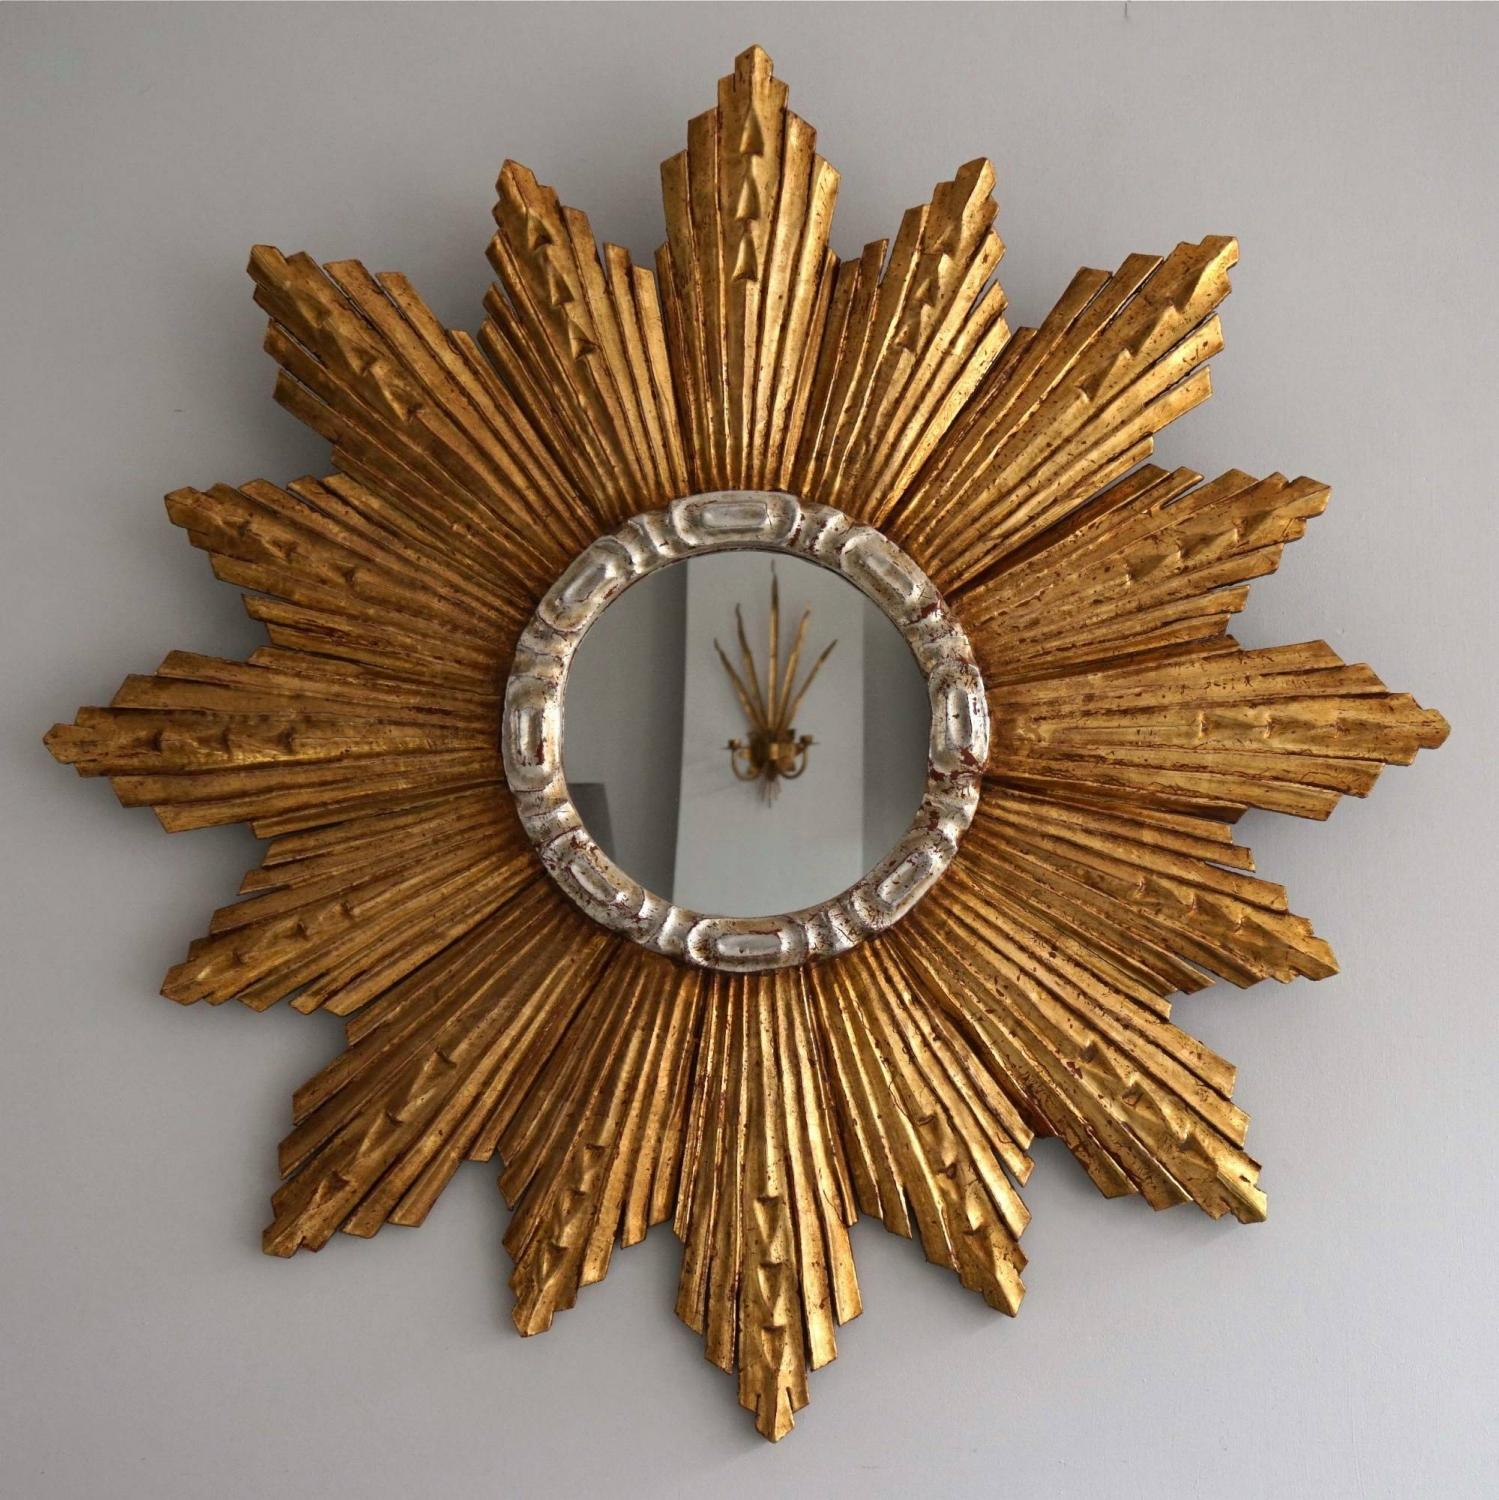 EXTRAORDINARY GRAND SCALE 1950'S SUNBURST MIRROR